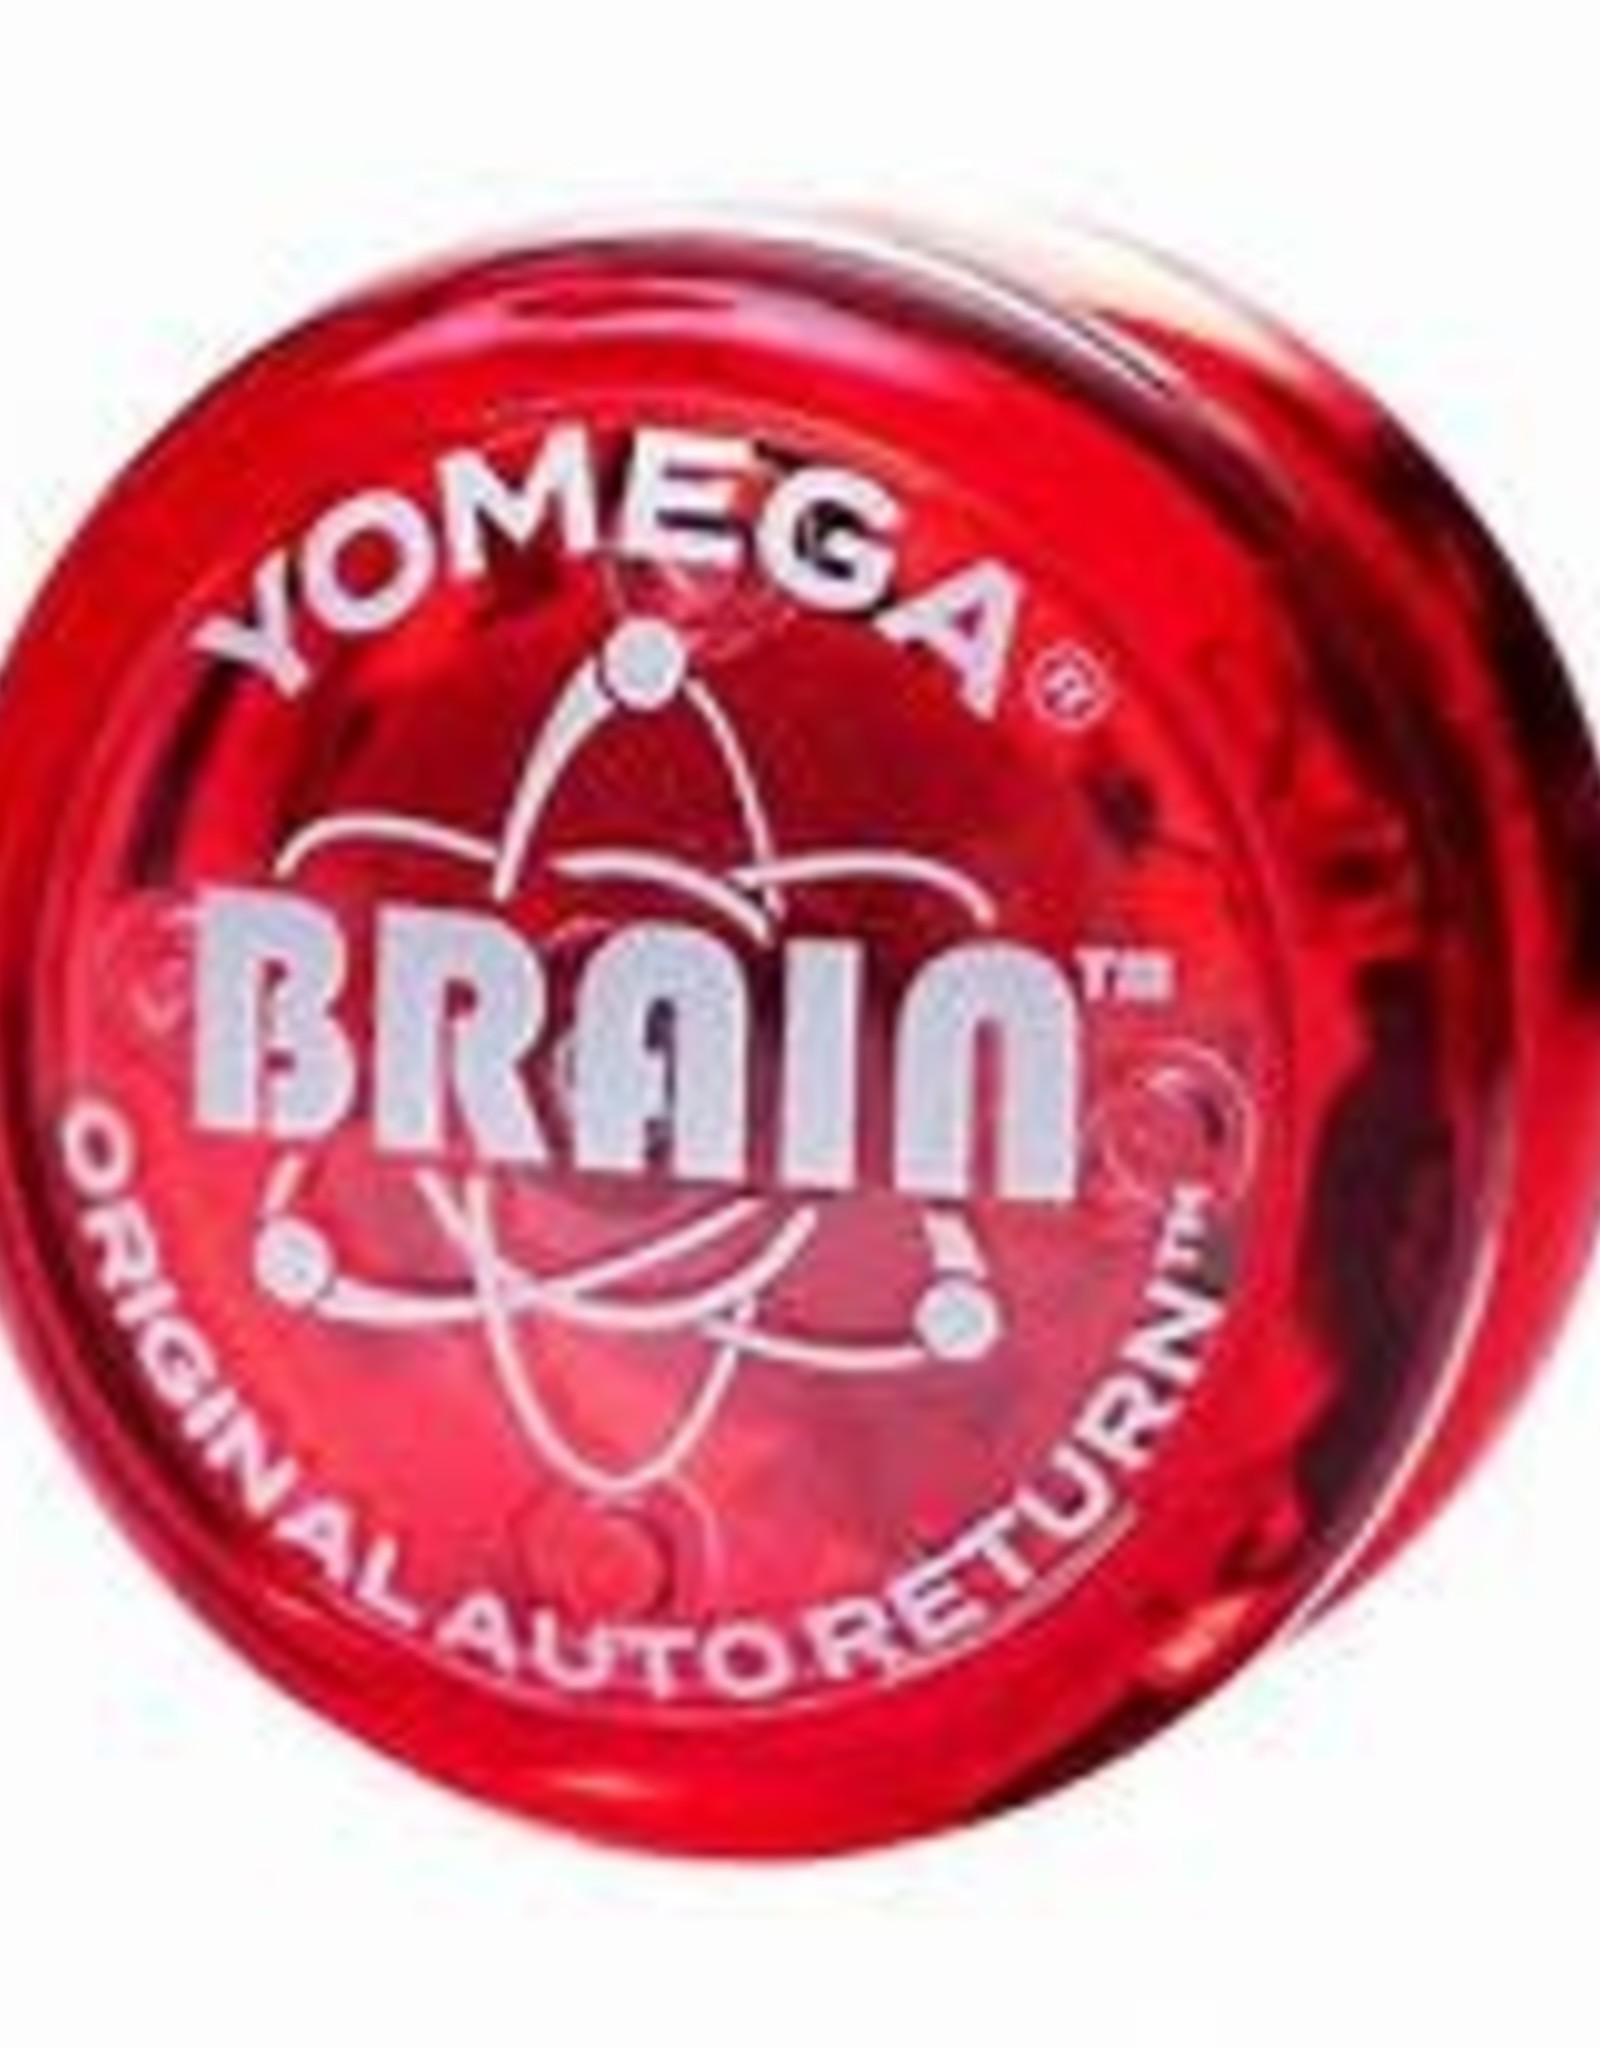 Yomega Brain - Original Auto-Return